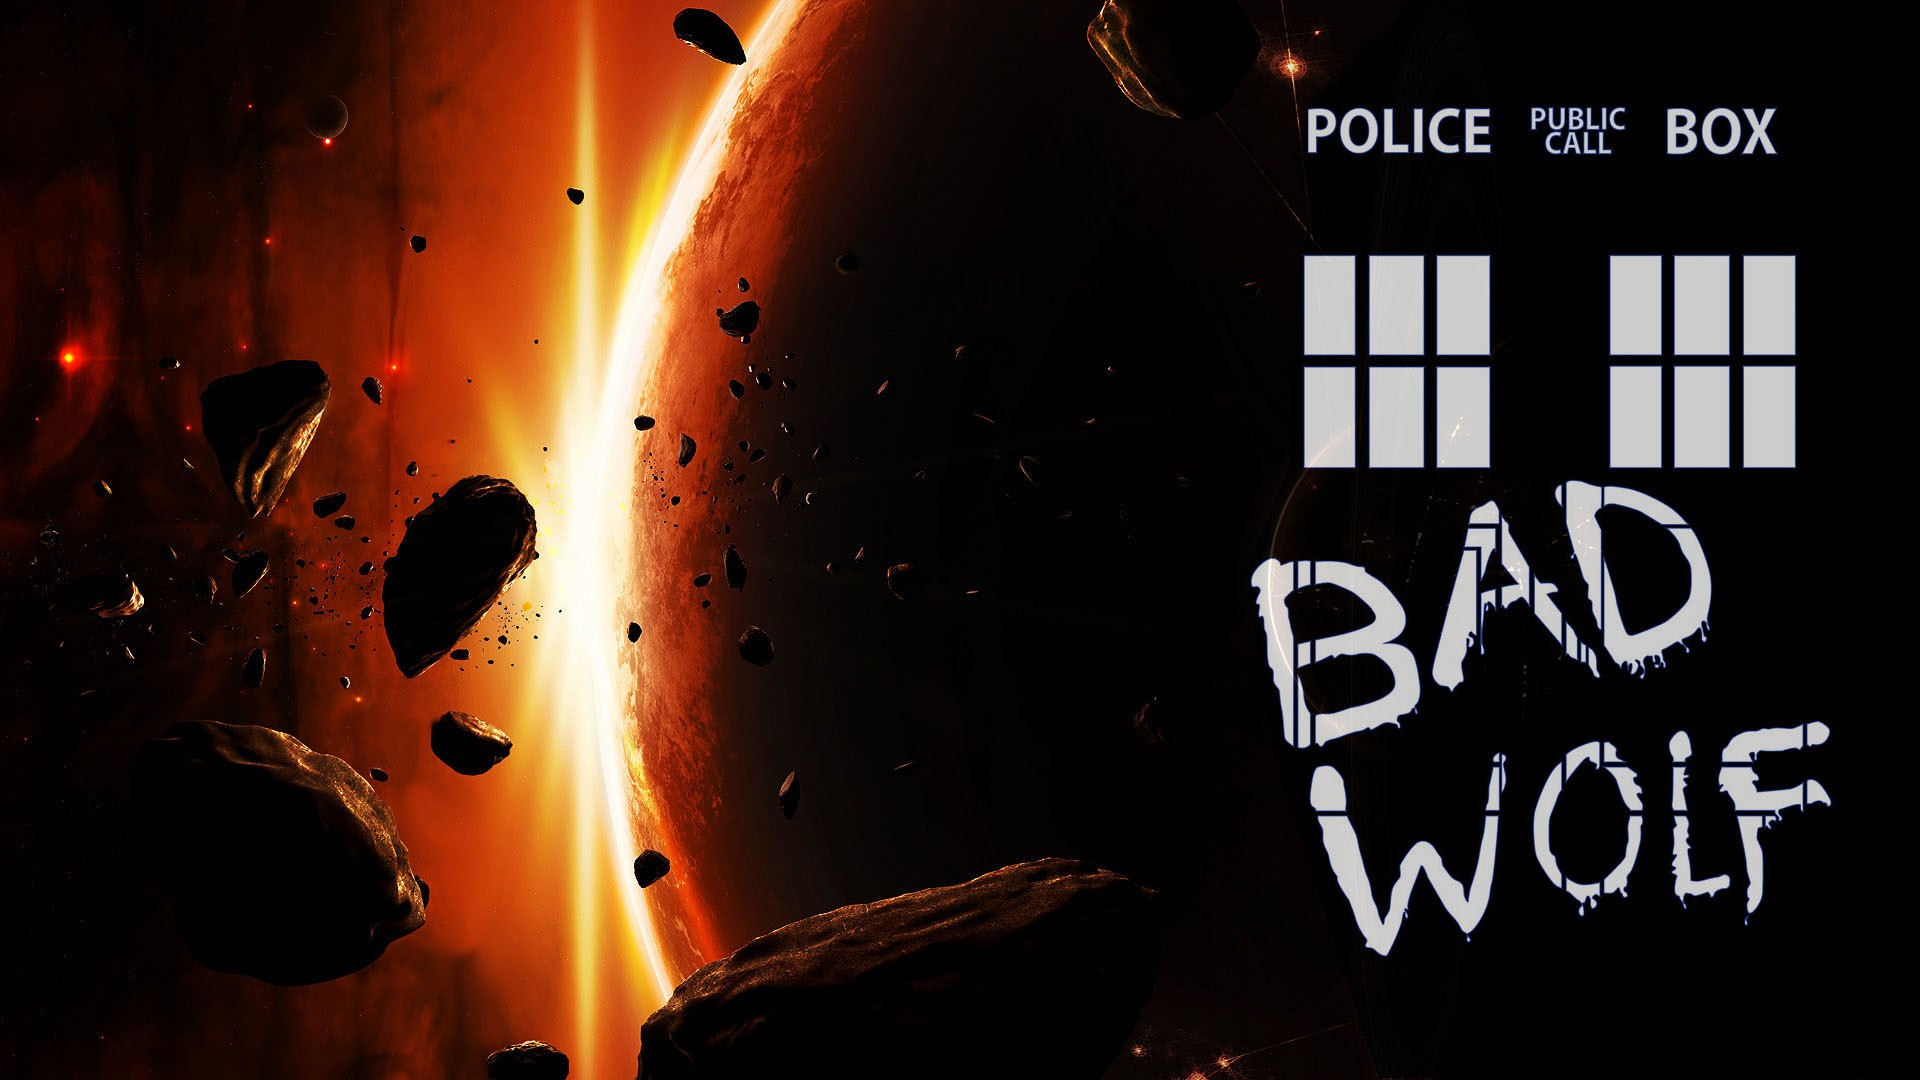 3d Asteroid Wallpaper Doctor Who Bad Wolf Tardis Planet Asteroid Wallpapers